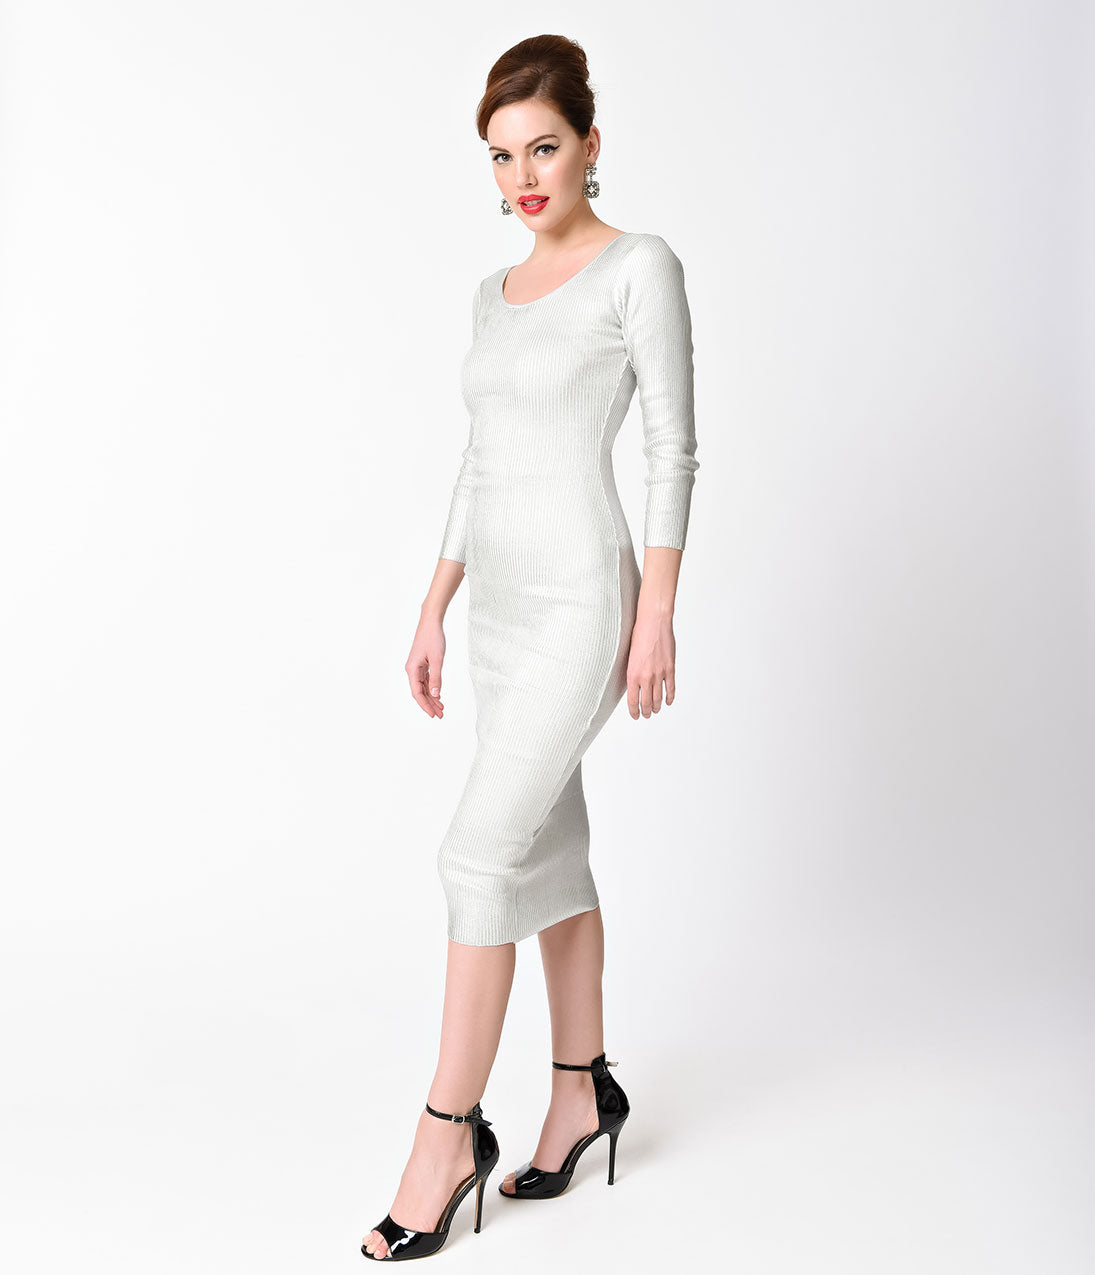 60s Wedding Dress | 1960s Style Wedding Dresses Vintage Style Ivory  Silver Ribbed Long Sleeve Knit Wiggle Dress $47.00 AT vintagedancer.com